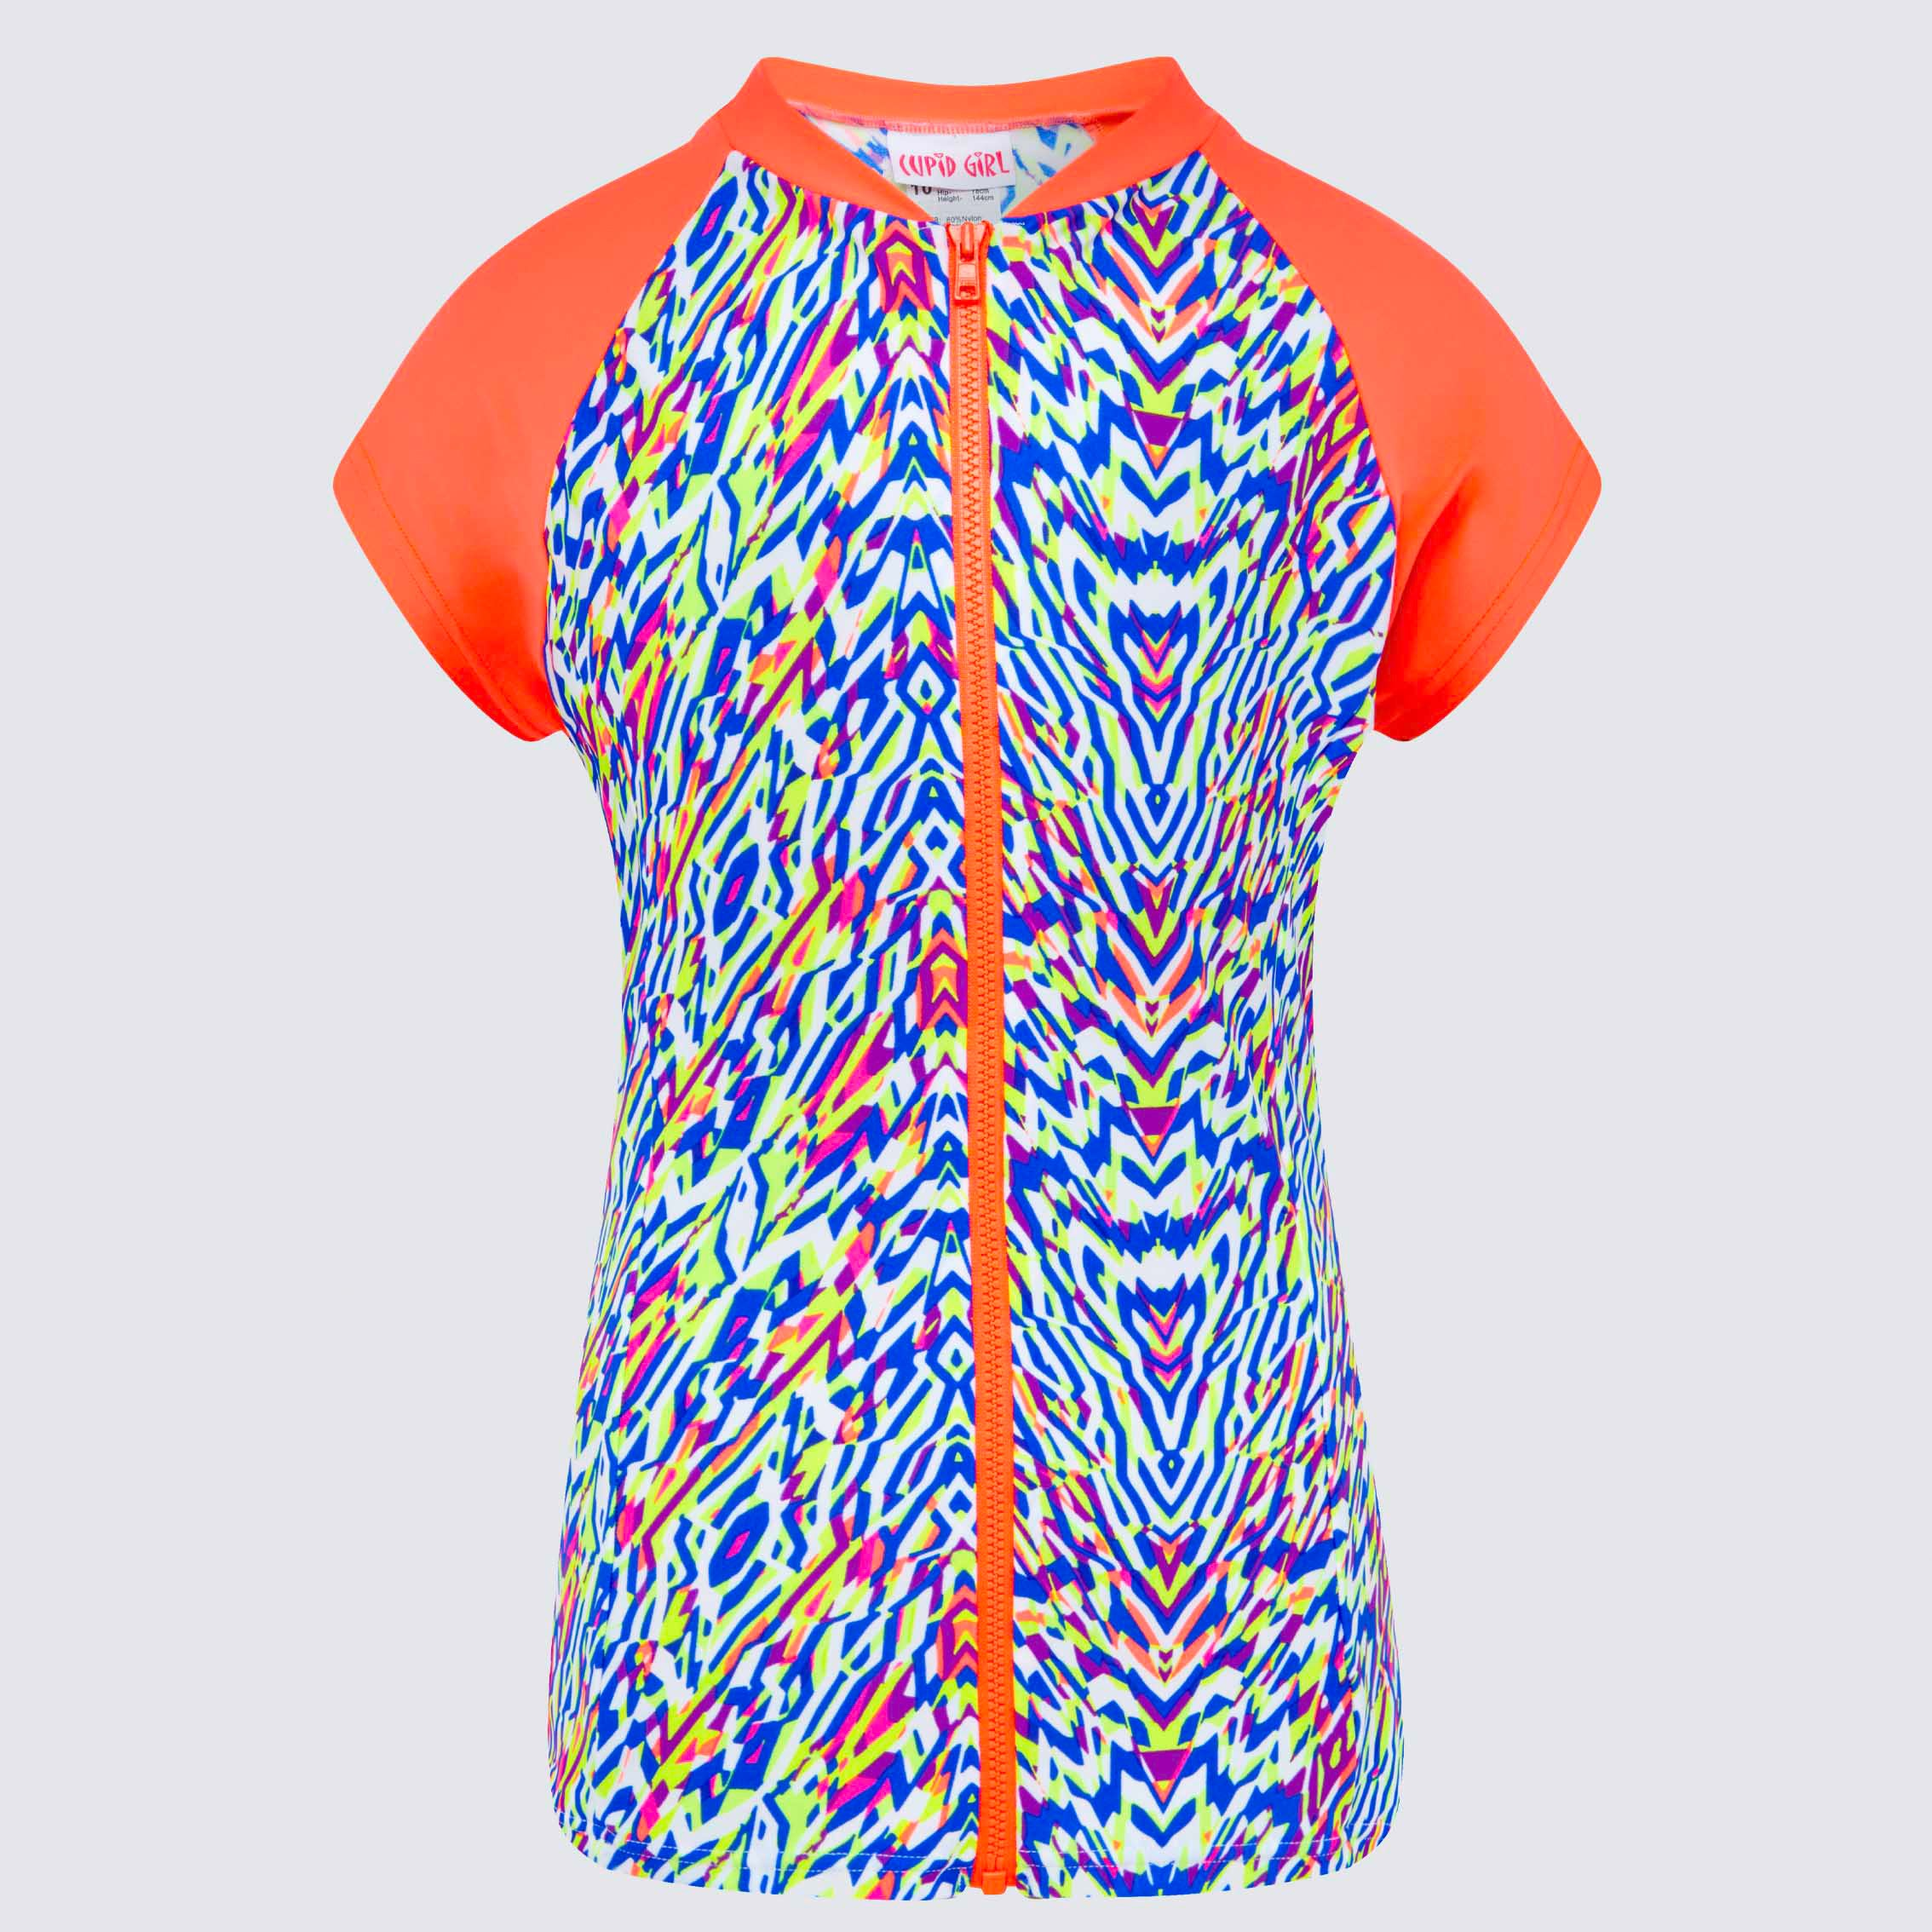 Cupid Girl Neon Tribe Short Sleeve Zip Rashie